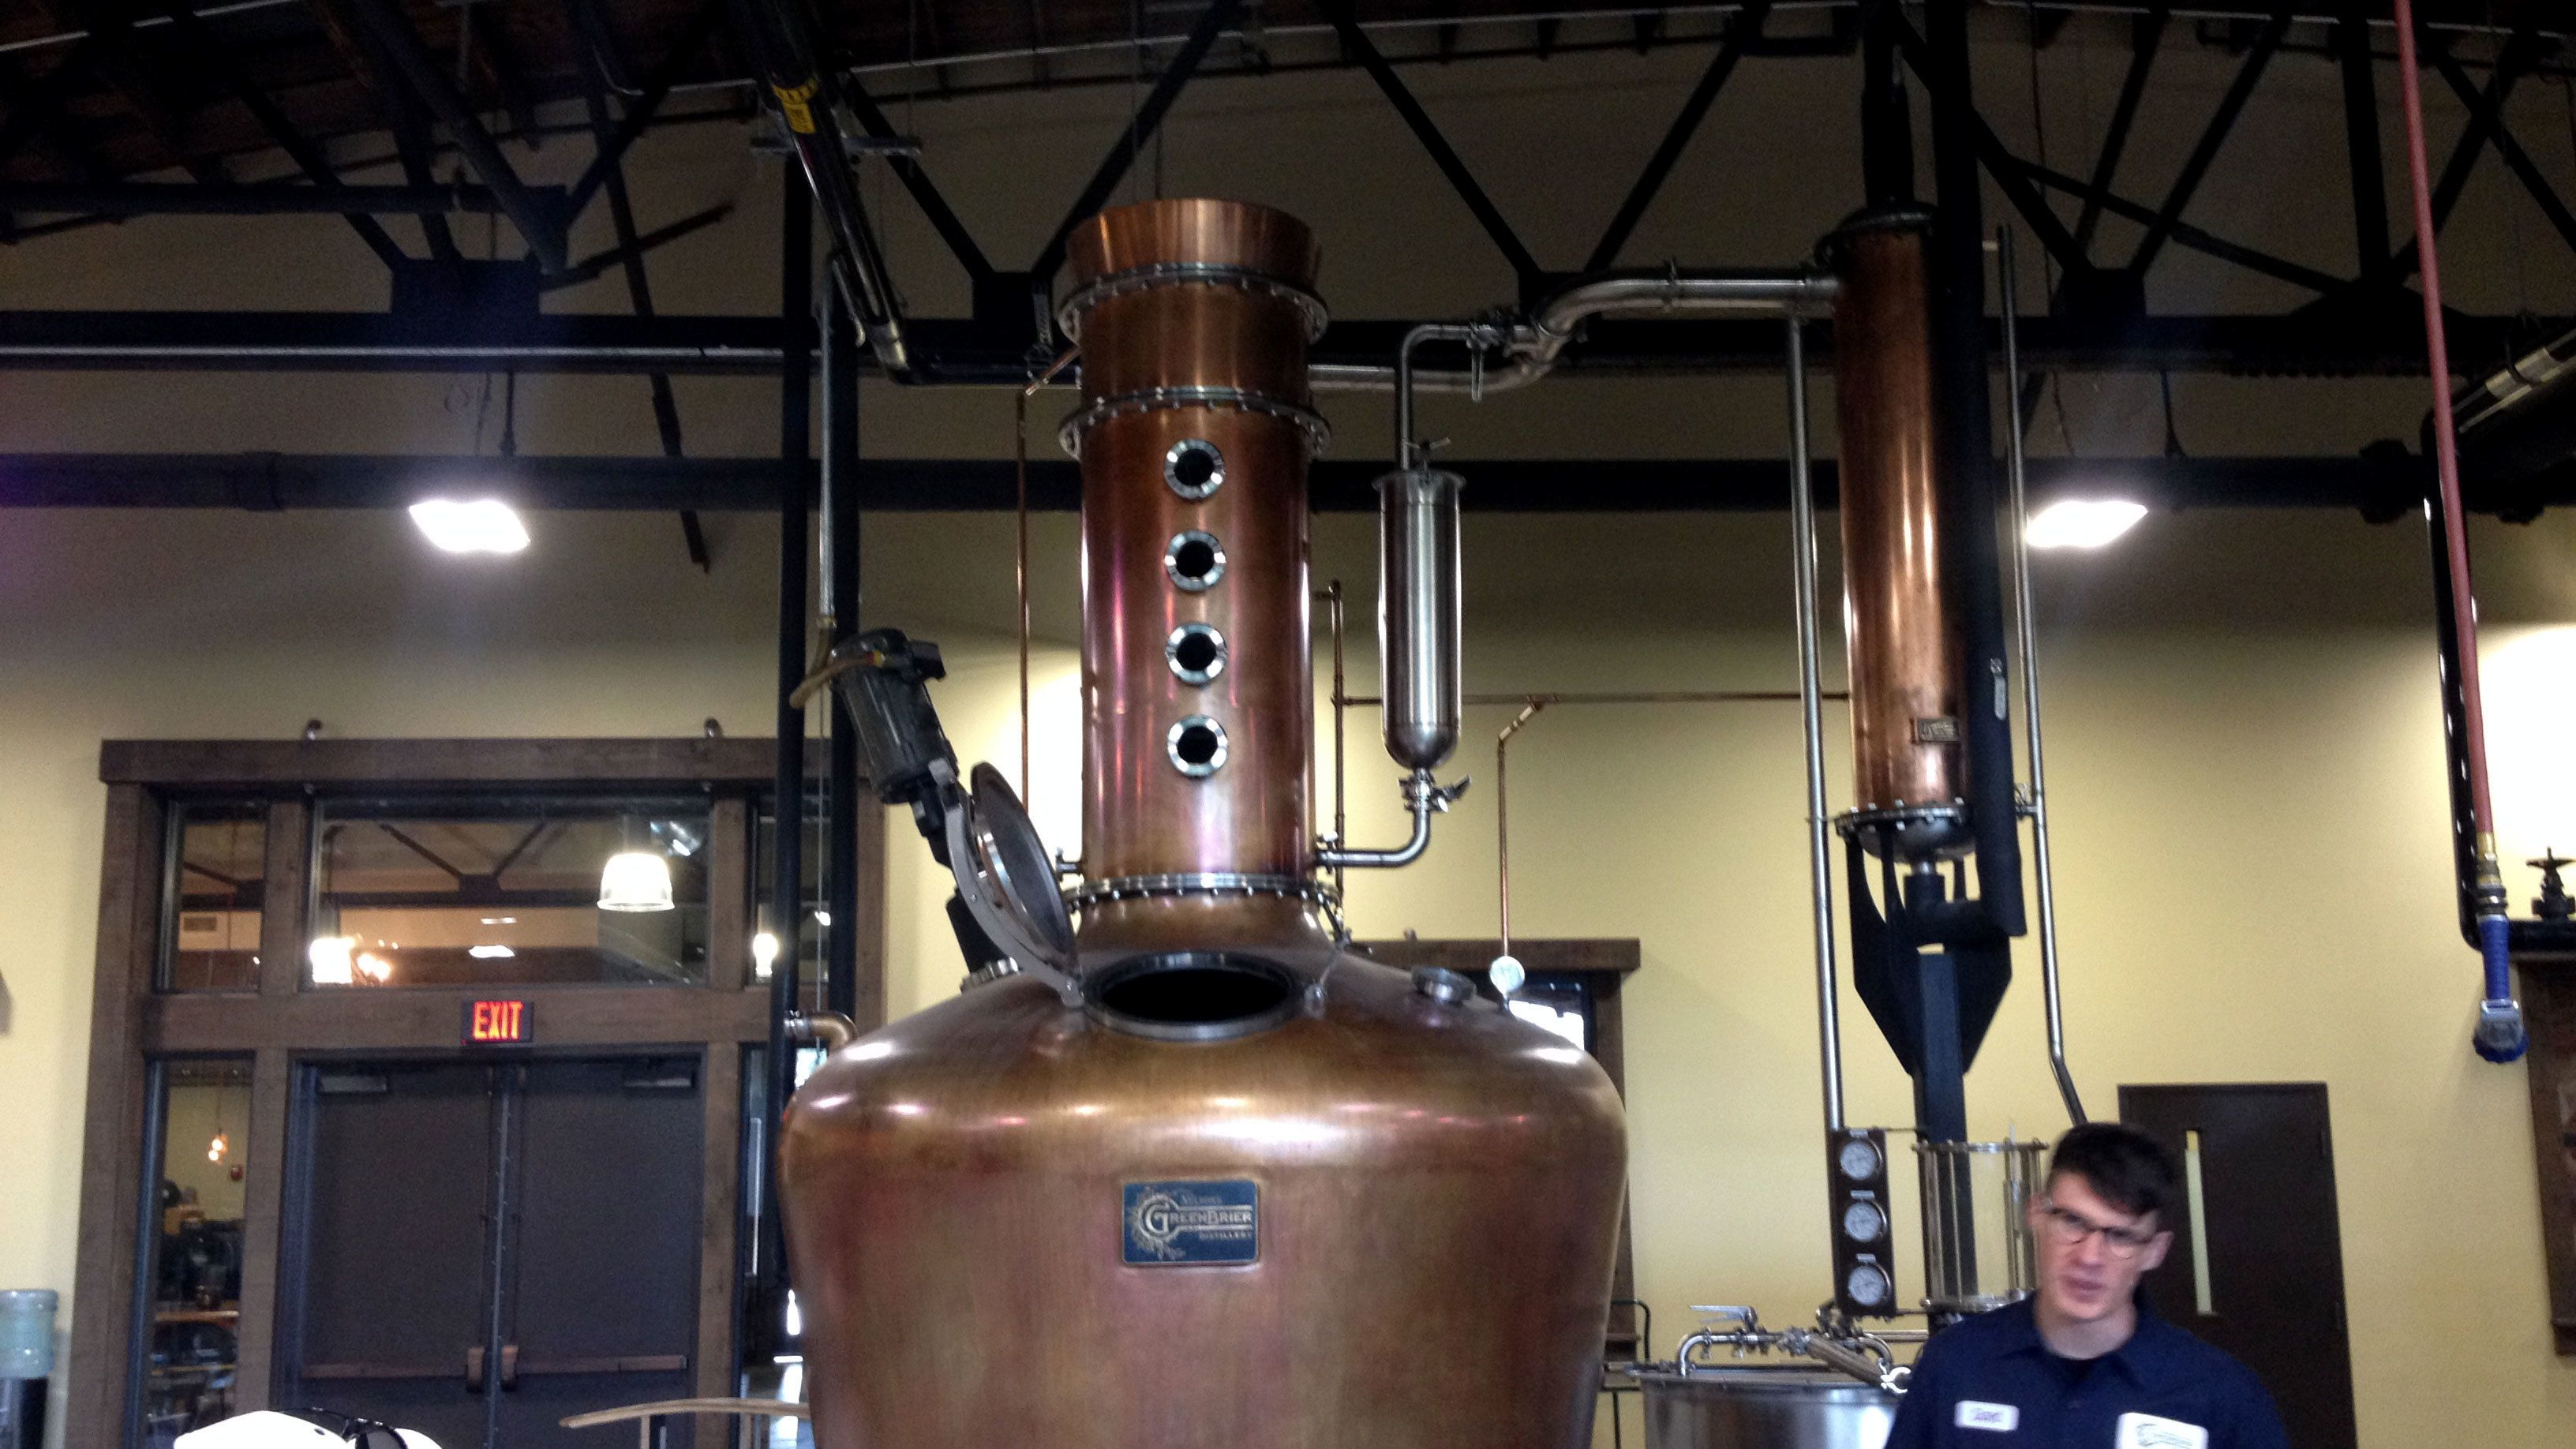 Inside a distillery in Tennessee